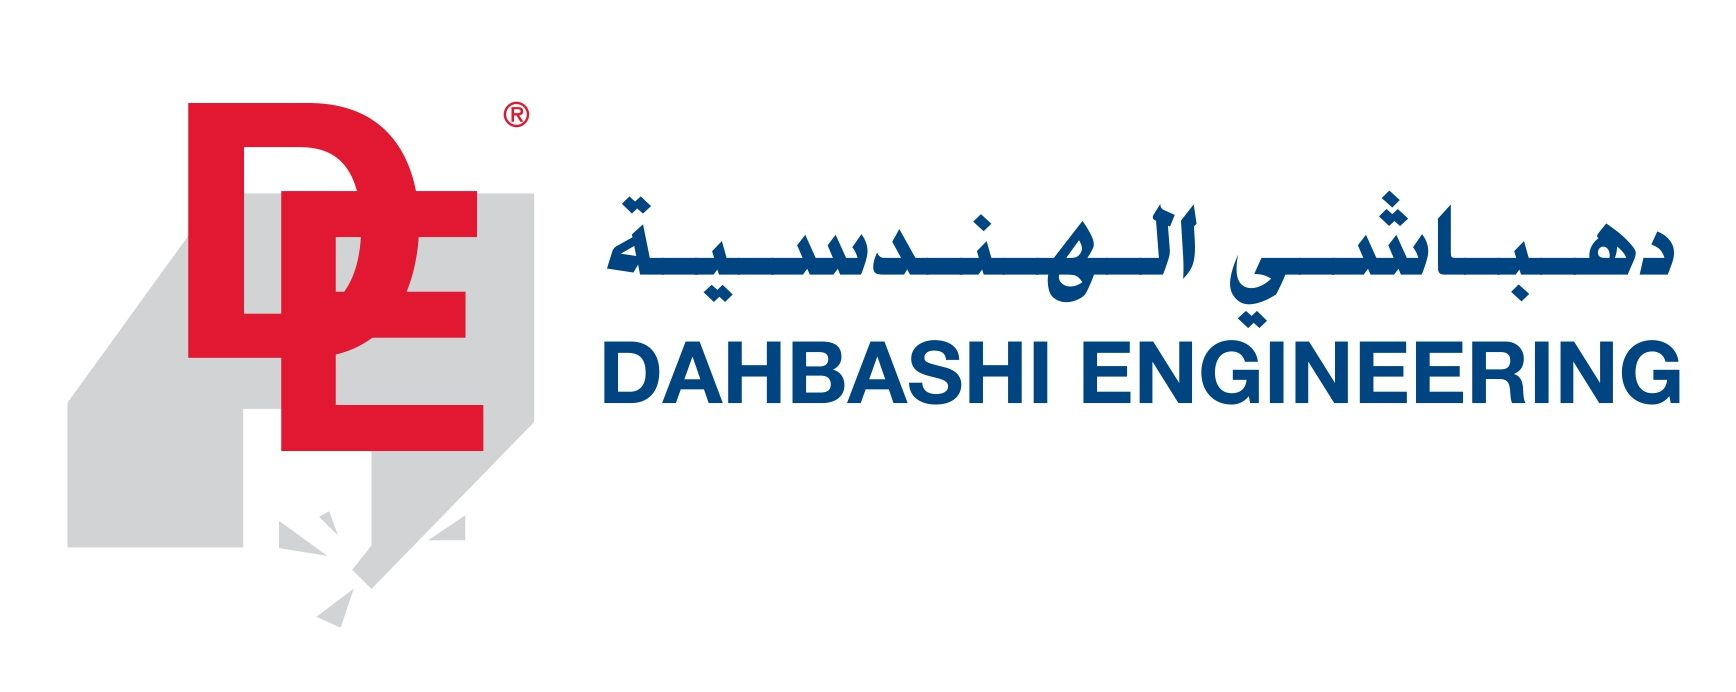 Dahbashi Engineering